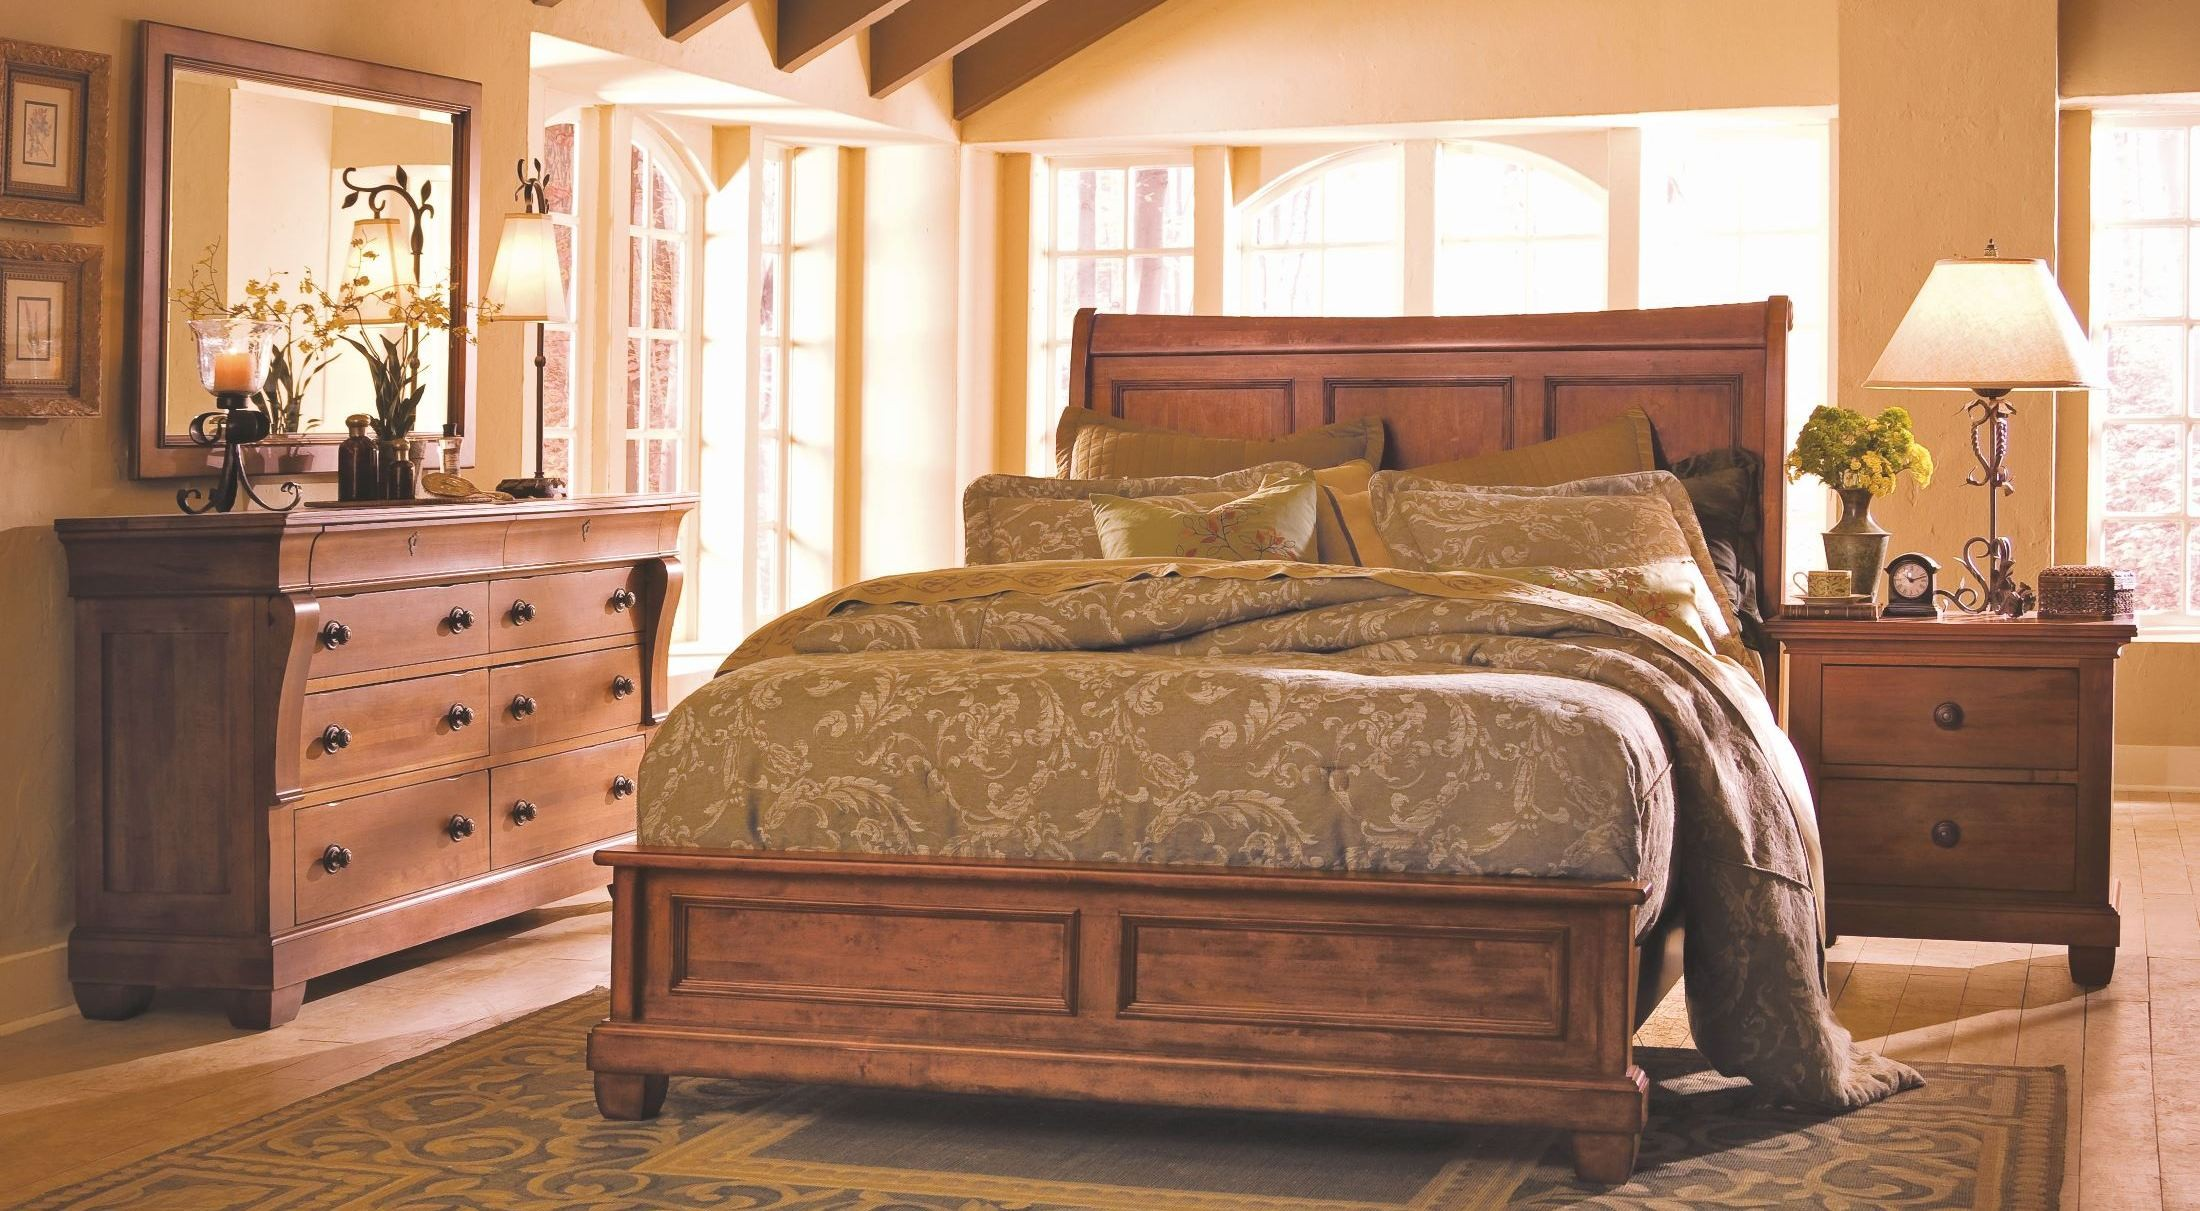 Tuscano Low Profile Bedroom Set From Kincaid 96 150p Coleman Furniture